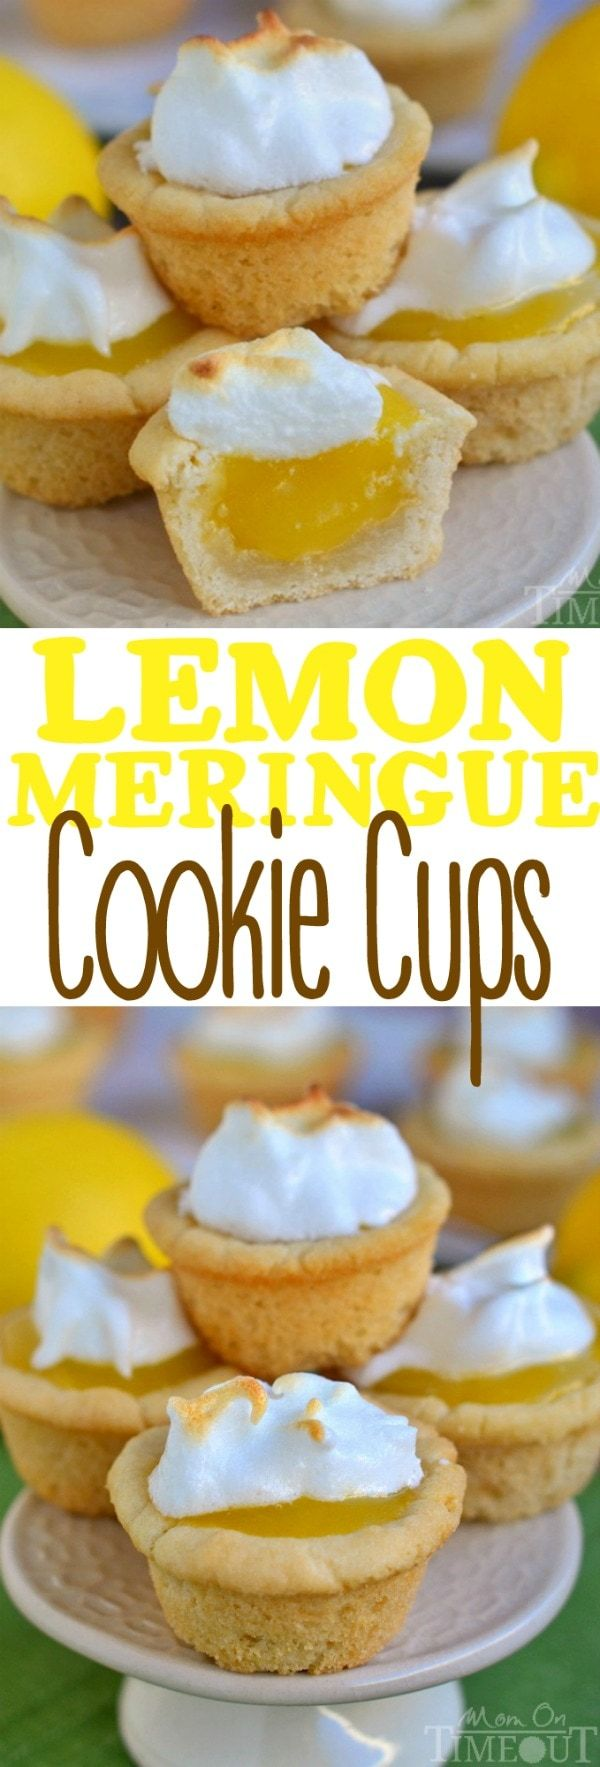 Lemon Meringue Cookie Cups are the perfect dessert for my lemon lovers out there! Sugar cookie cups